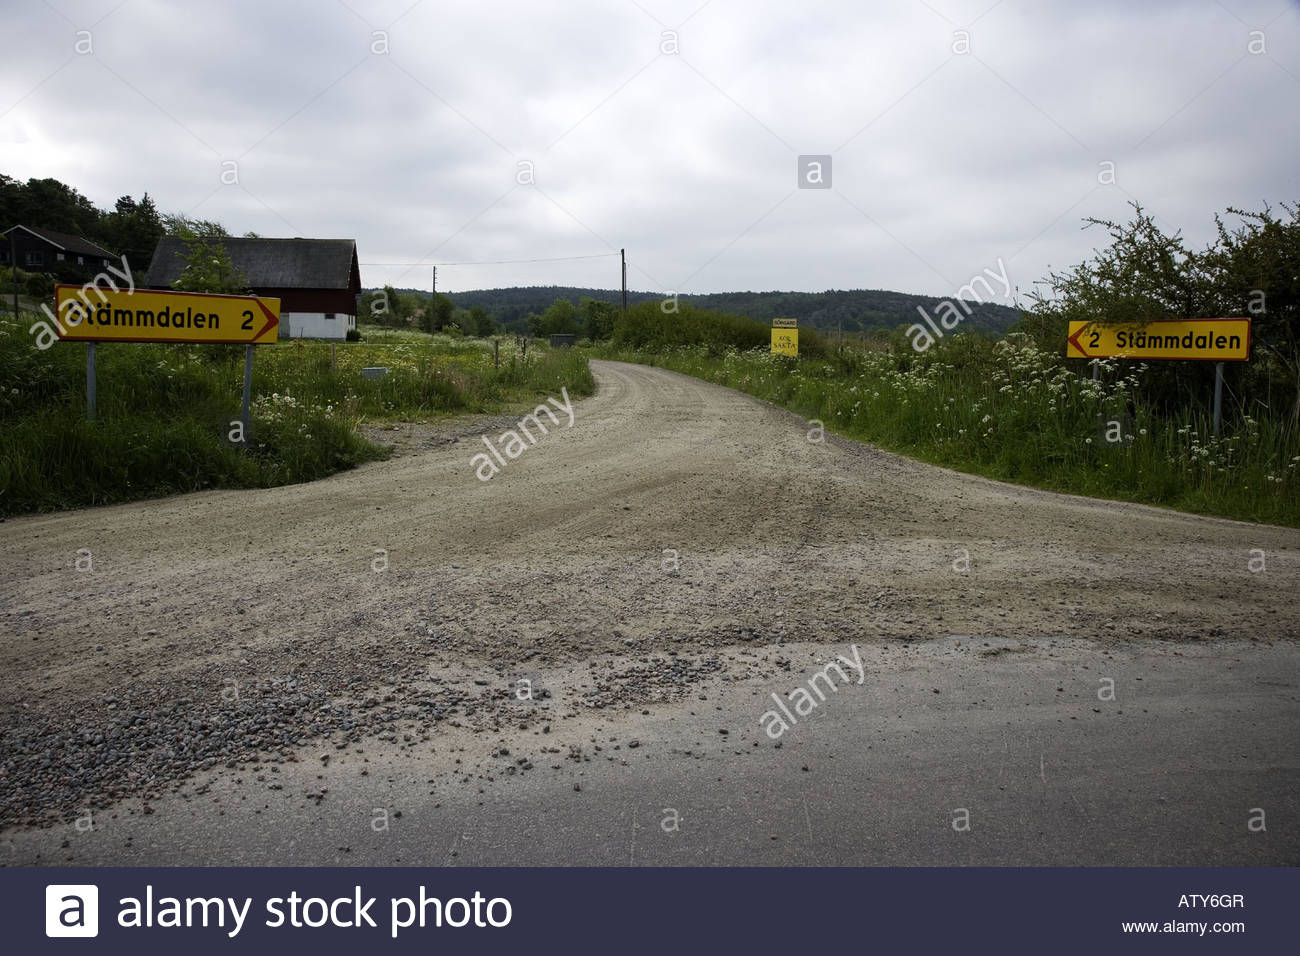 Road with signboards on each side - Stock Image